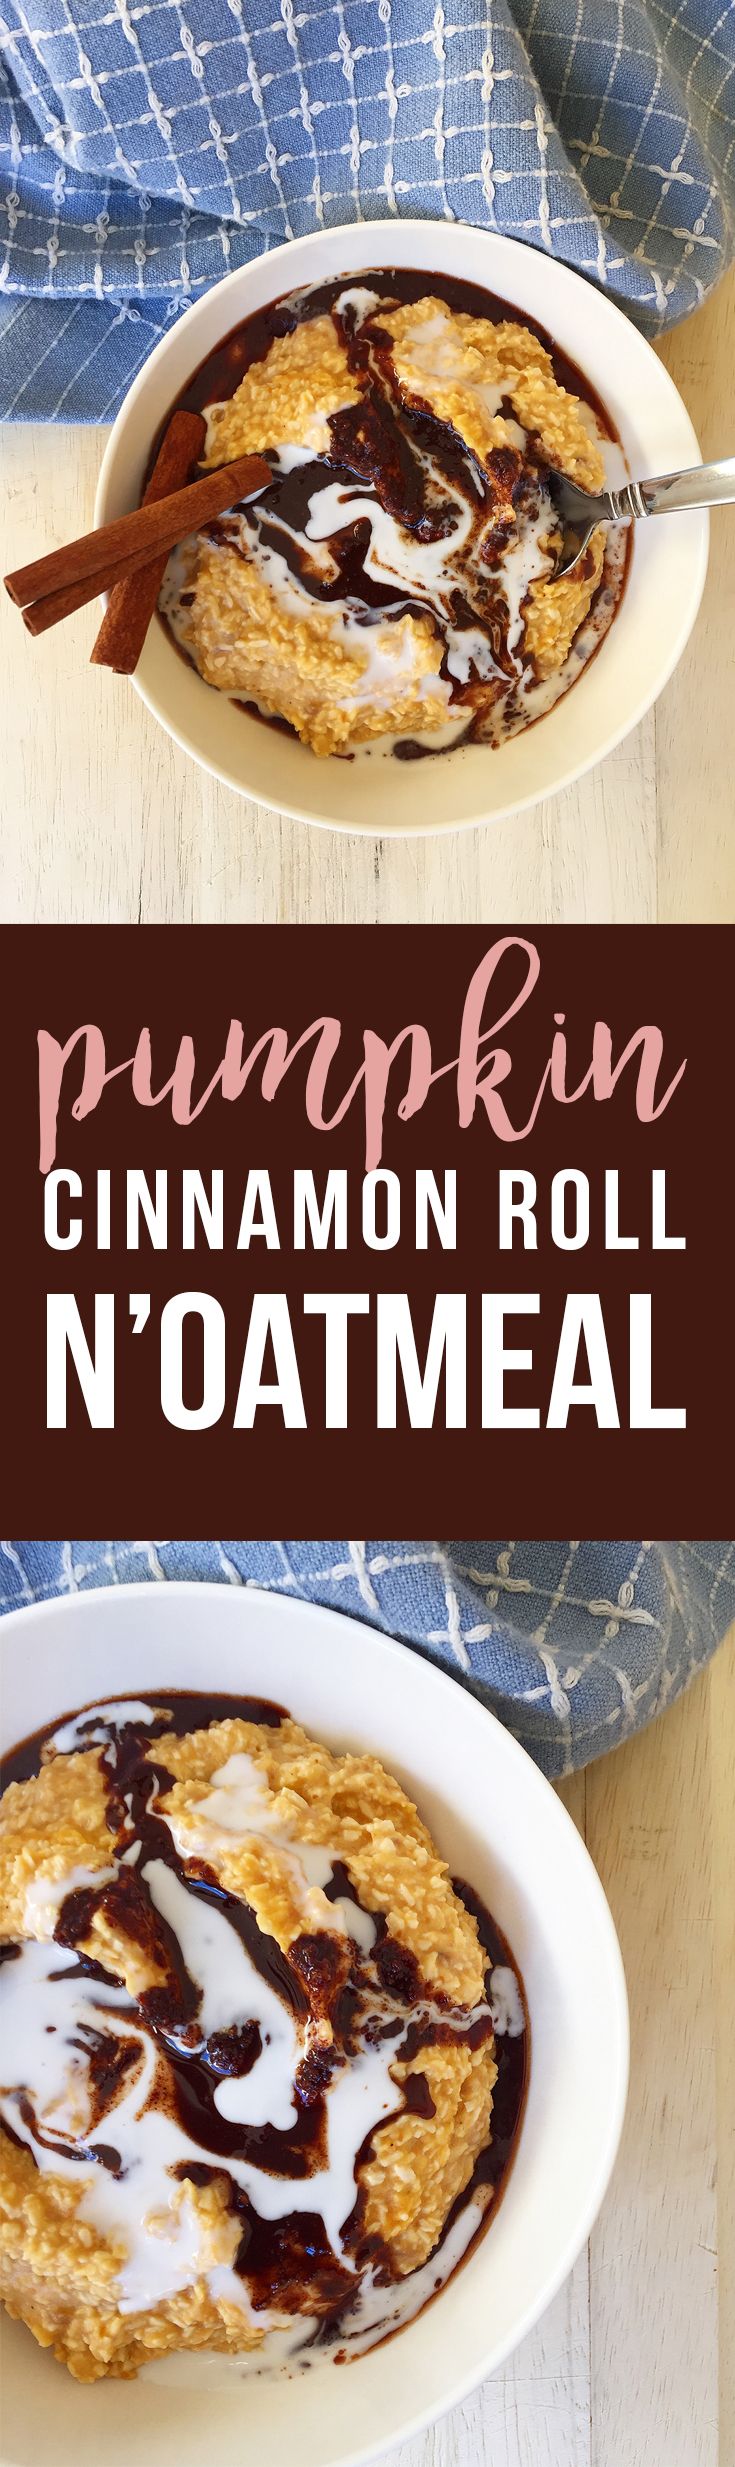 This easy Pumpkin Cinnamon Roll N'Oatmeal makes a delicious holiday alternative to oatmeal for breakfast, snack, or treat. (grain/gluten free, dairy free, paleo, vegan) | Fresh Planet Flavor